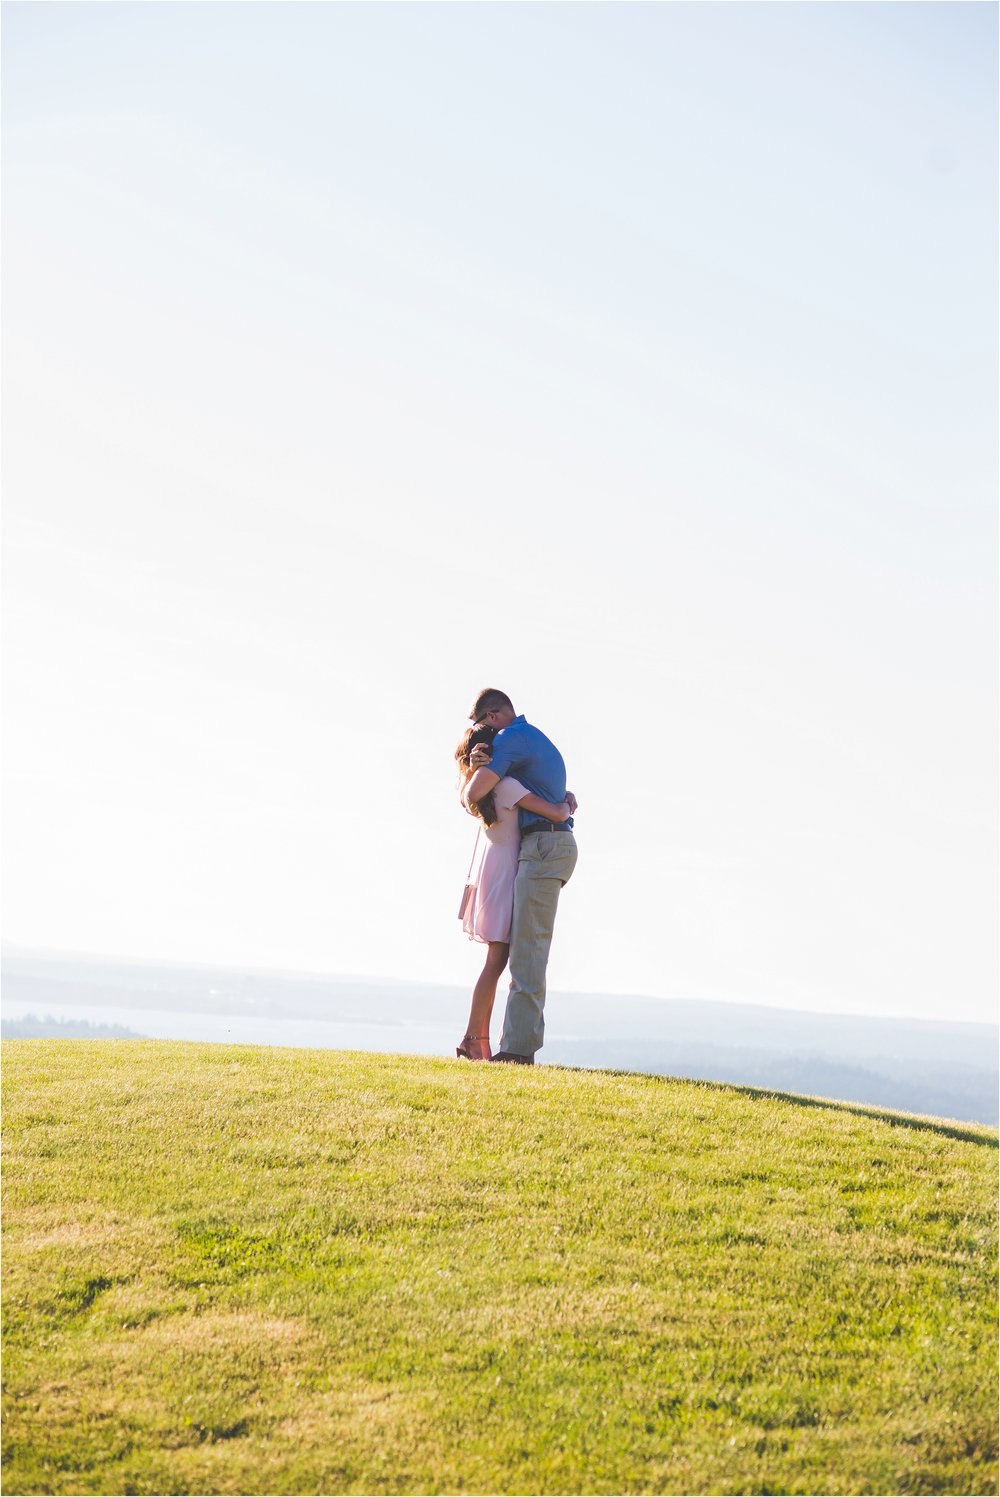 newcastle-golf-club-proposal-jannicka-mayte-seattle-washington-engagement-wedding-photographer_0006.jpg